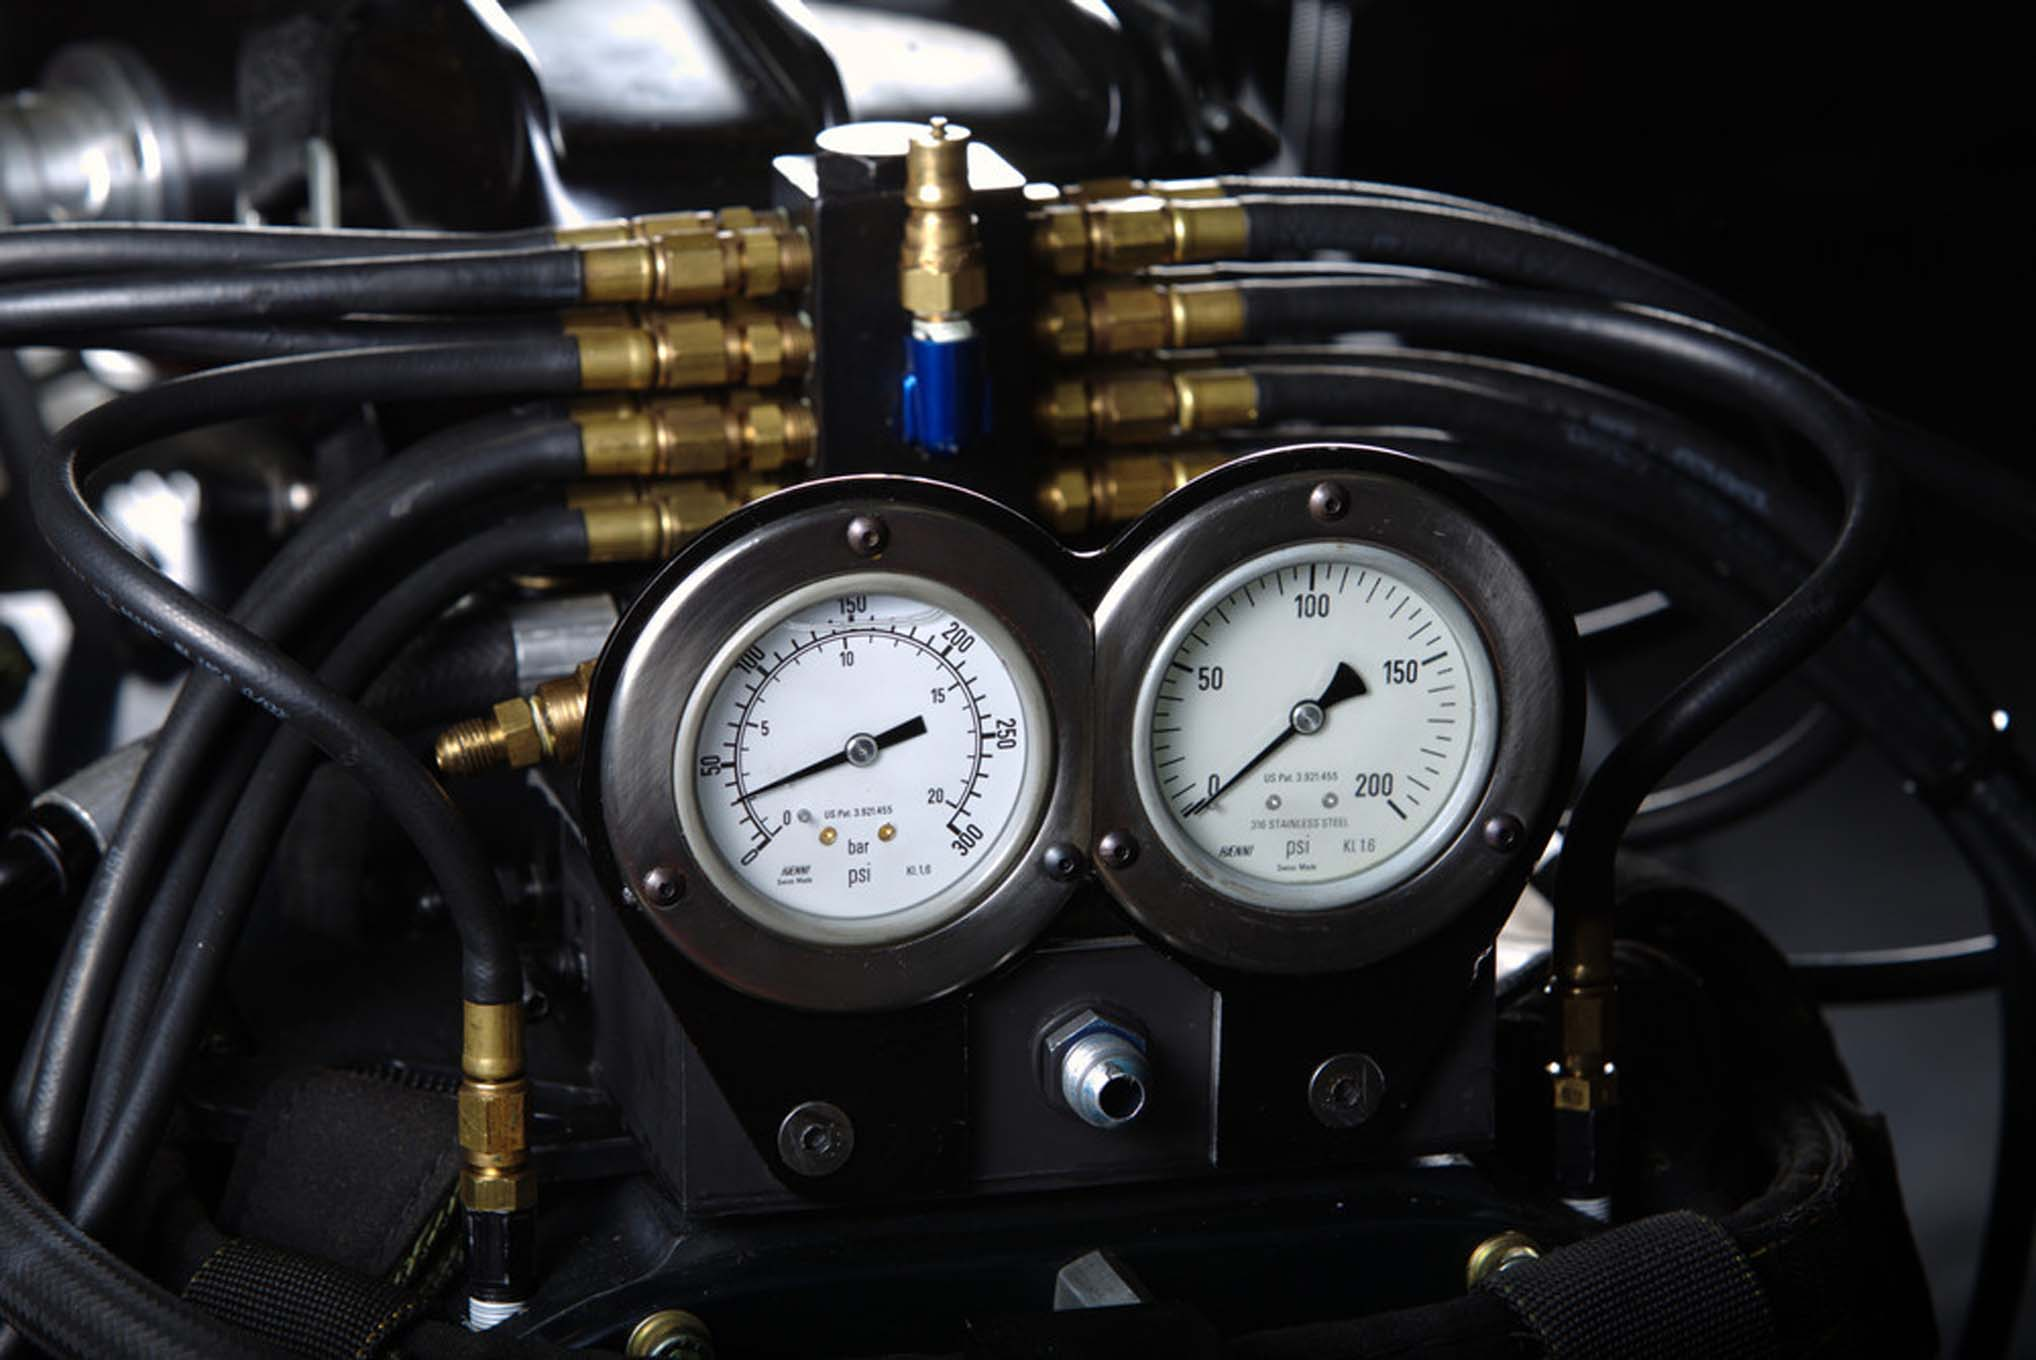 There are 24 lines for fuel injectors: eight injectors for idle, then 16 injectors for the hit—with eight going into each cylinder and eight into the blower dumping supercharged fuel into the engine, but also cooling down the supercharger in the process.